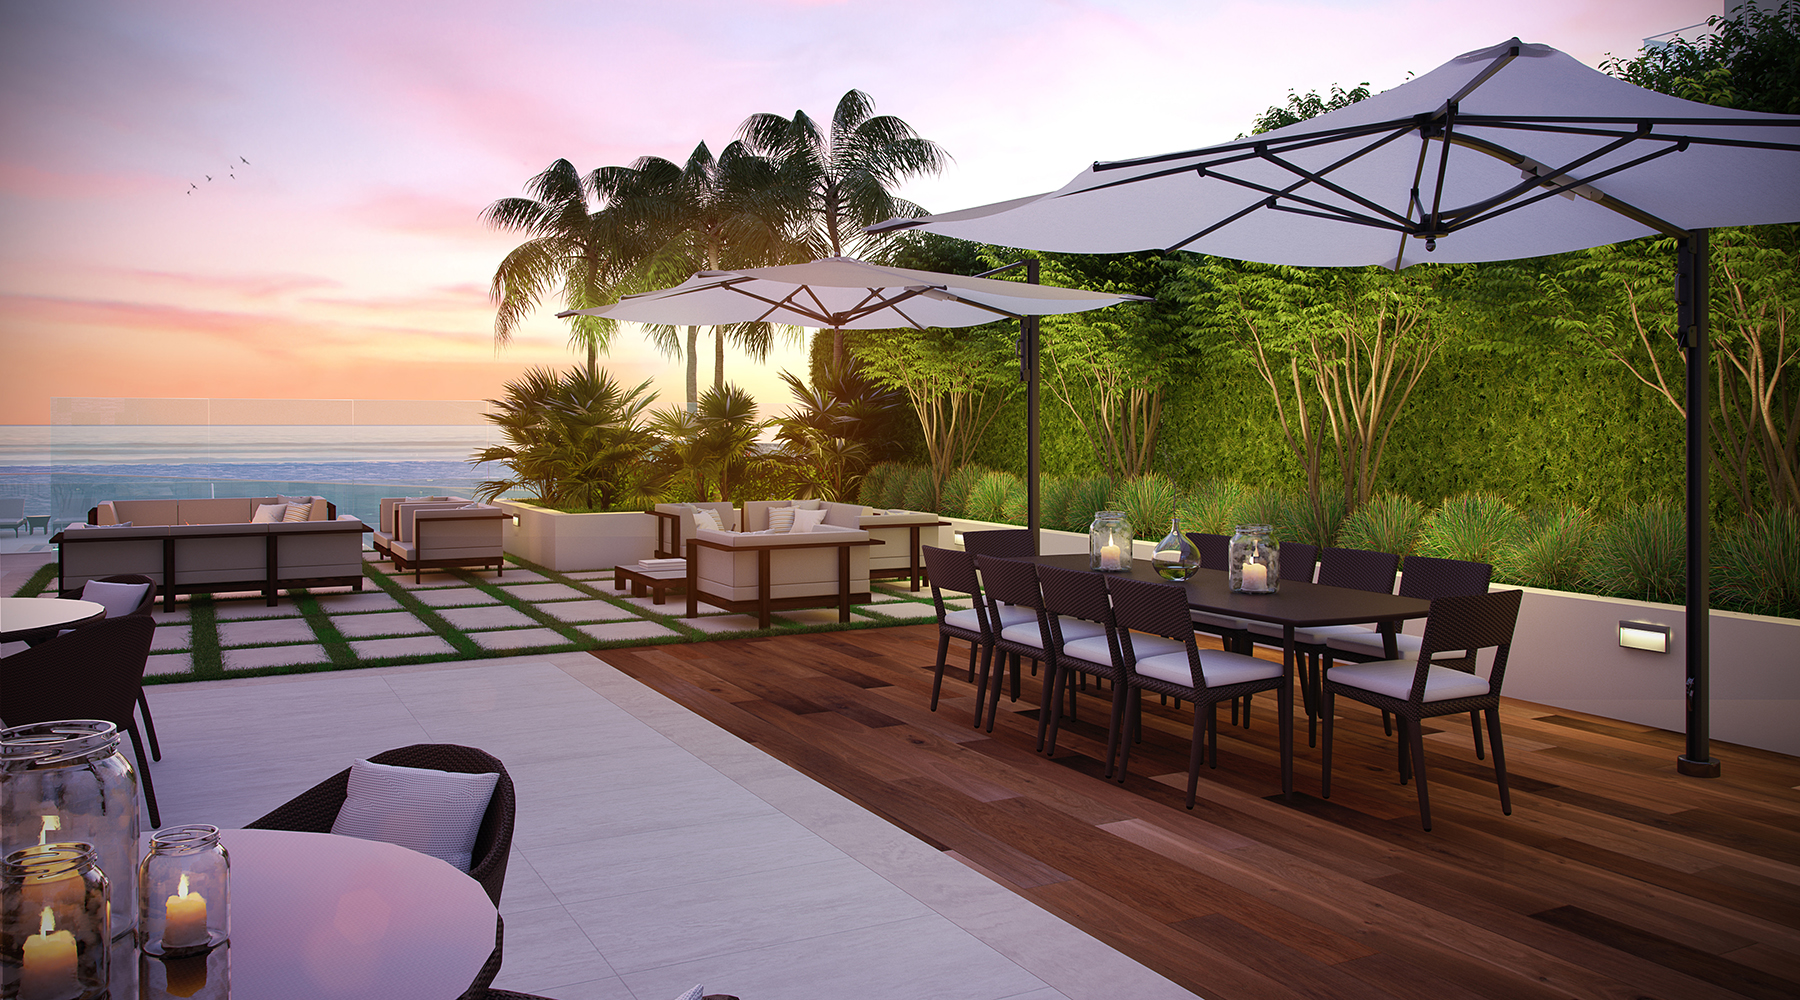 Regency Tower South, Ft. Lauderdale, Florida; Outdoor Dining